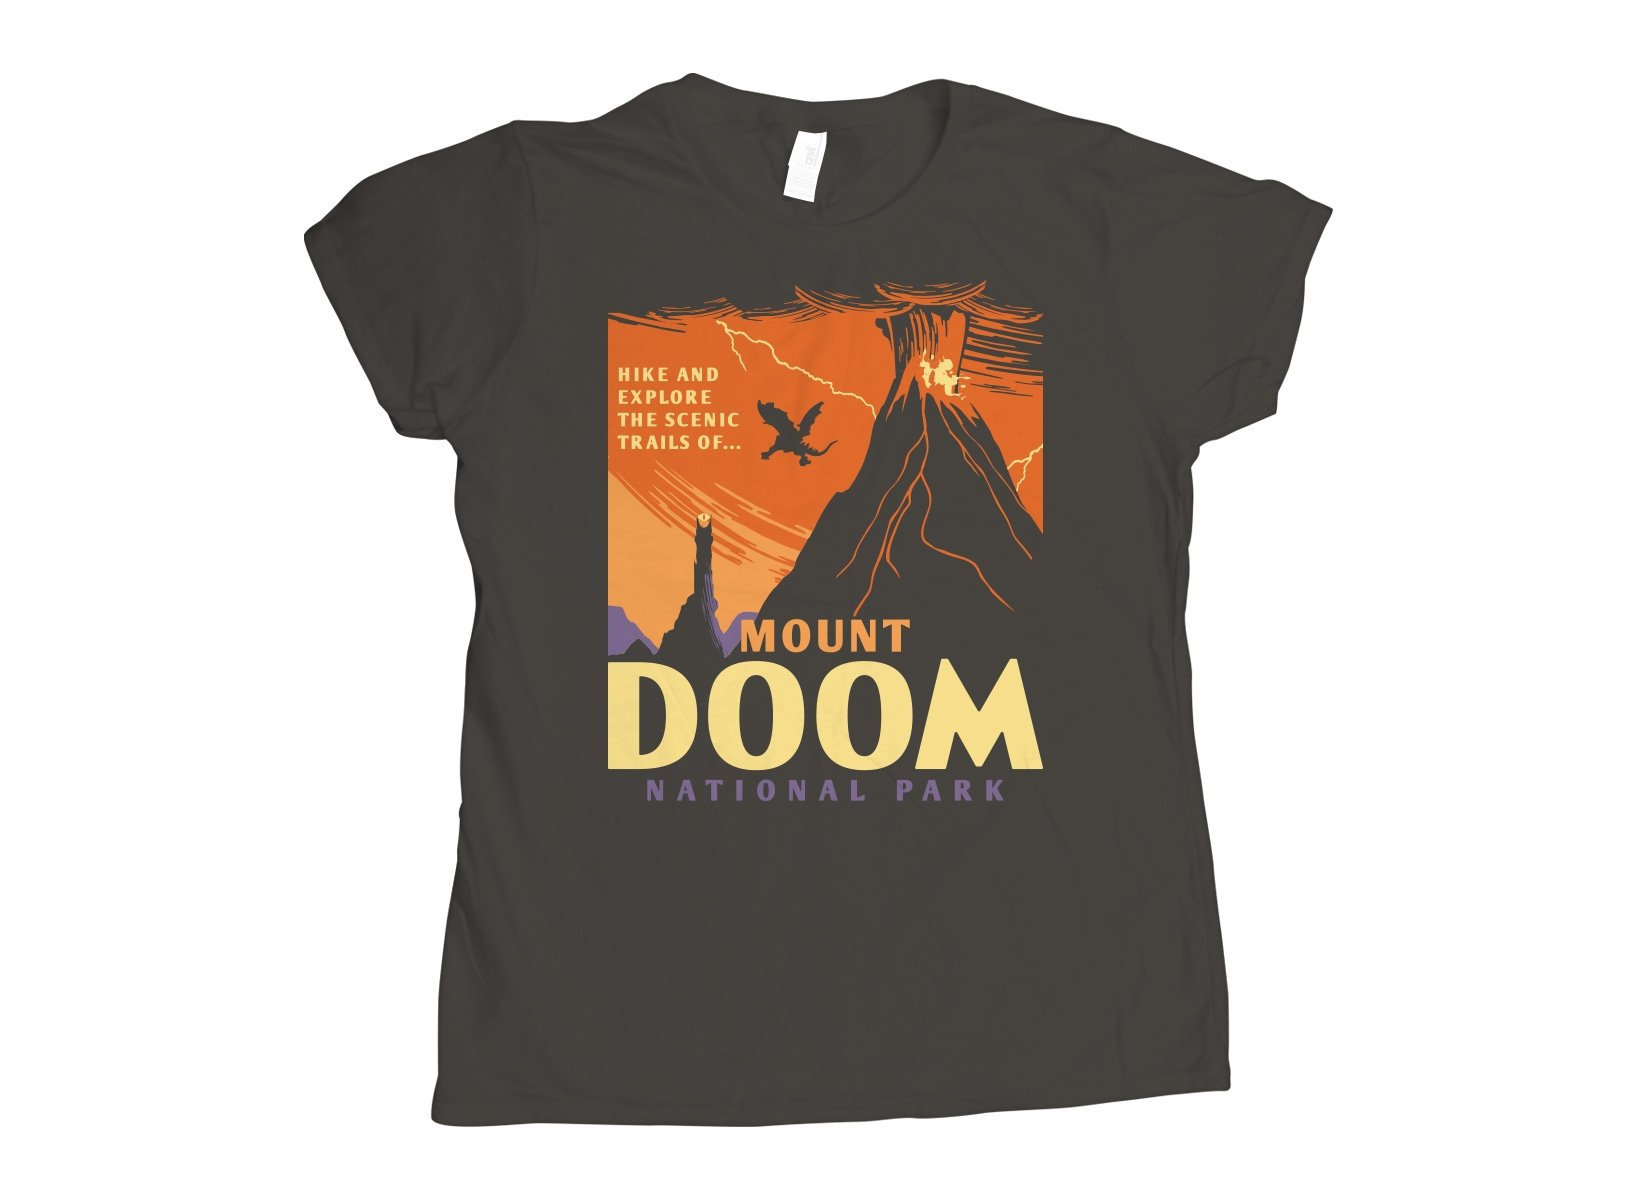 Mount Doom National Park on Womens T-Shirt